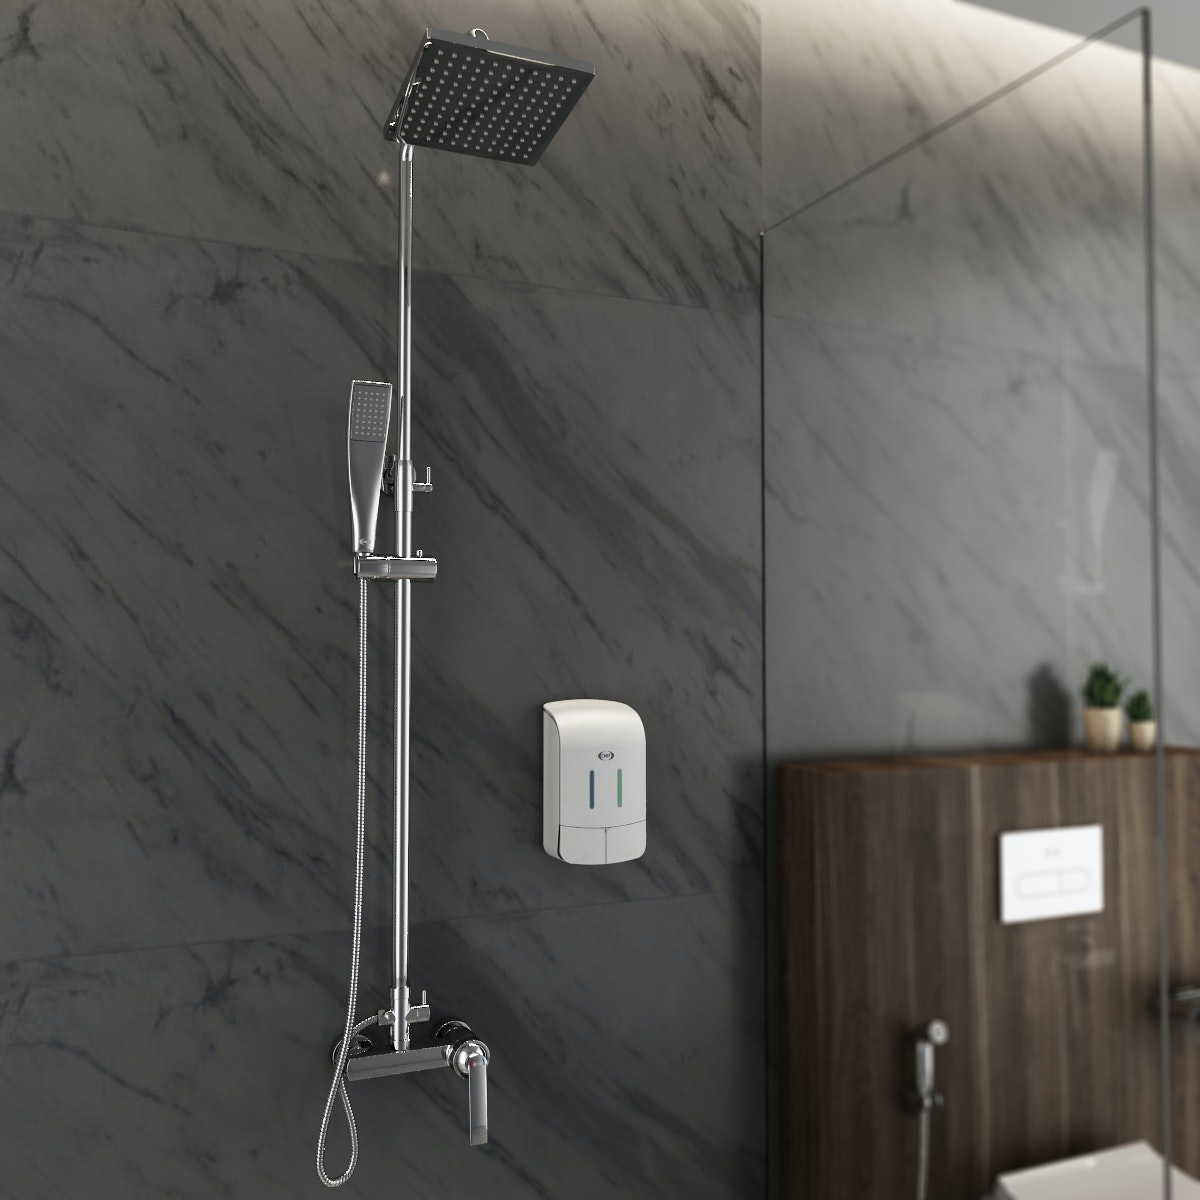 AER Mixer Shower Set (Wall+Hand Shower) Panas-Dingin, Kran Air, Keran MS-4